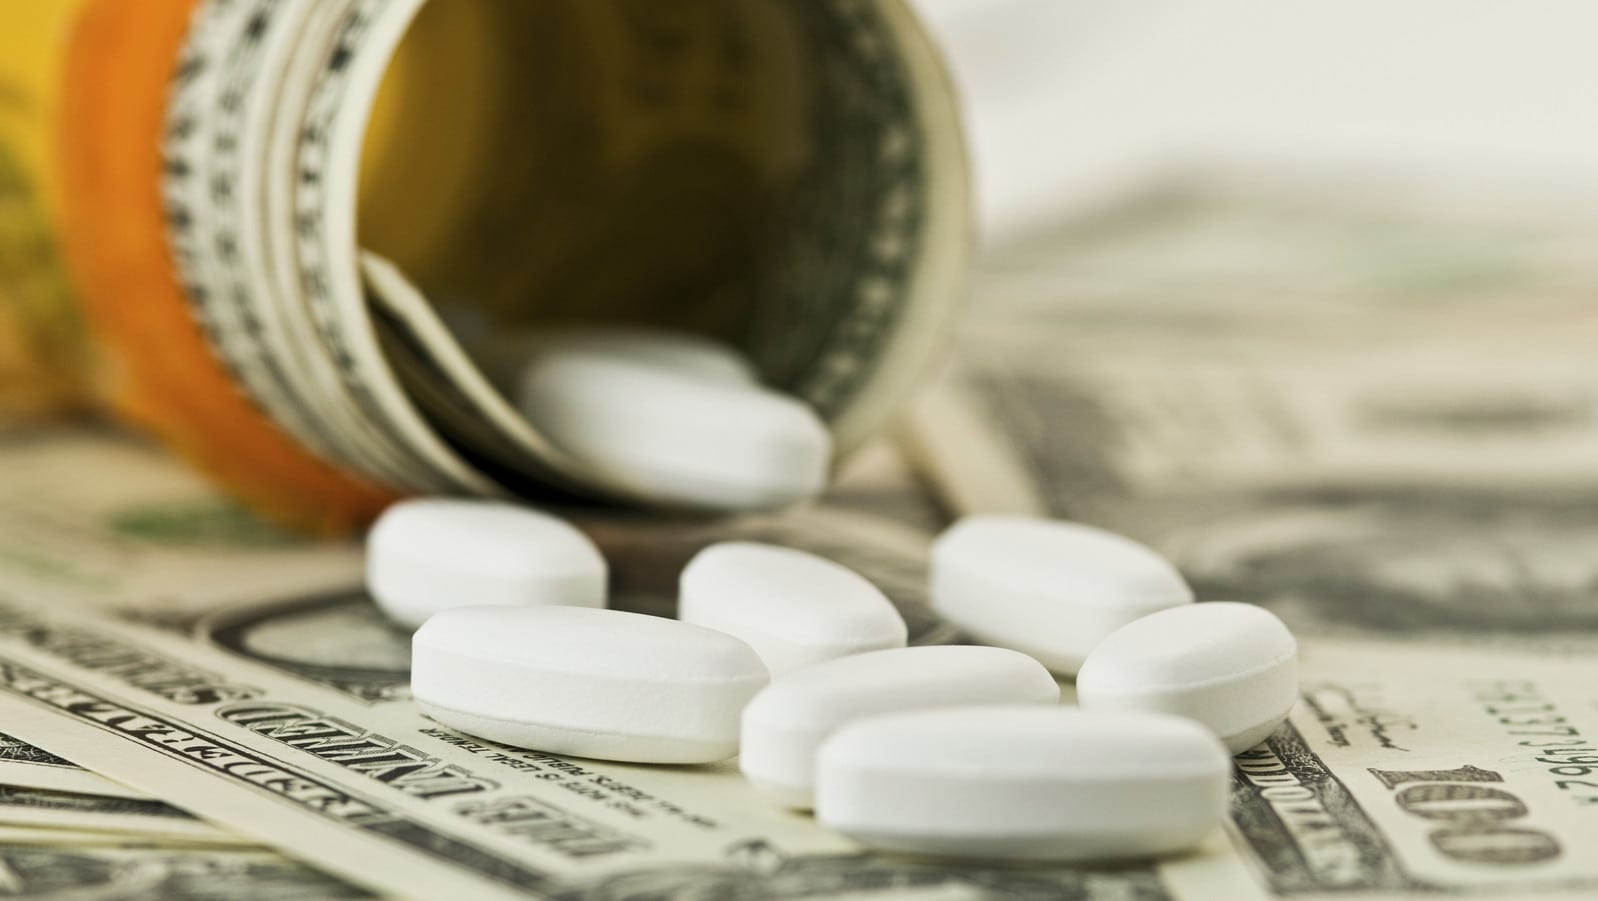 fda-approves-drug-that-does-not-work